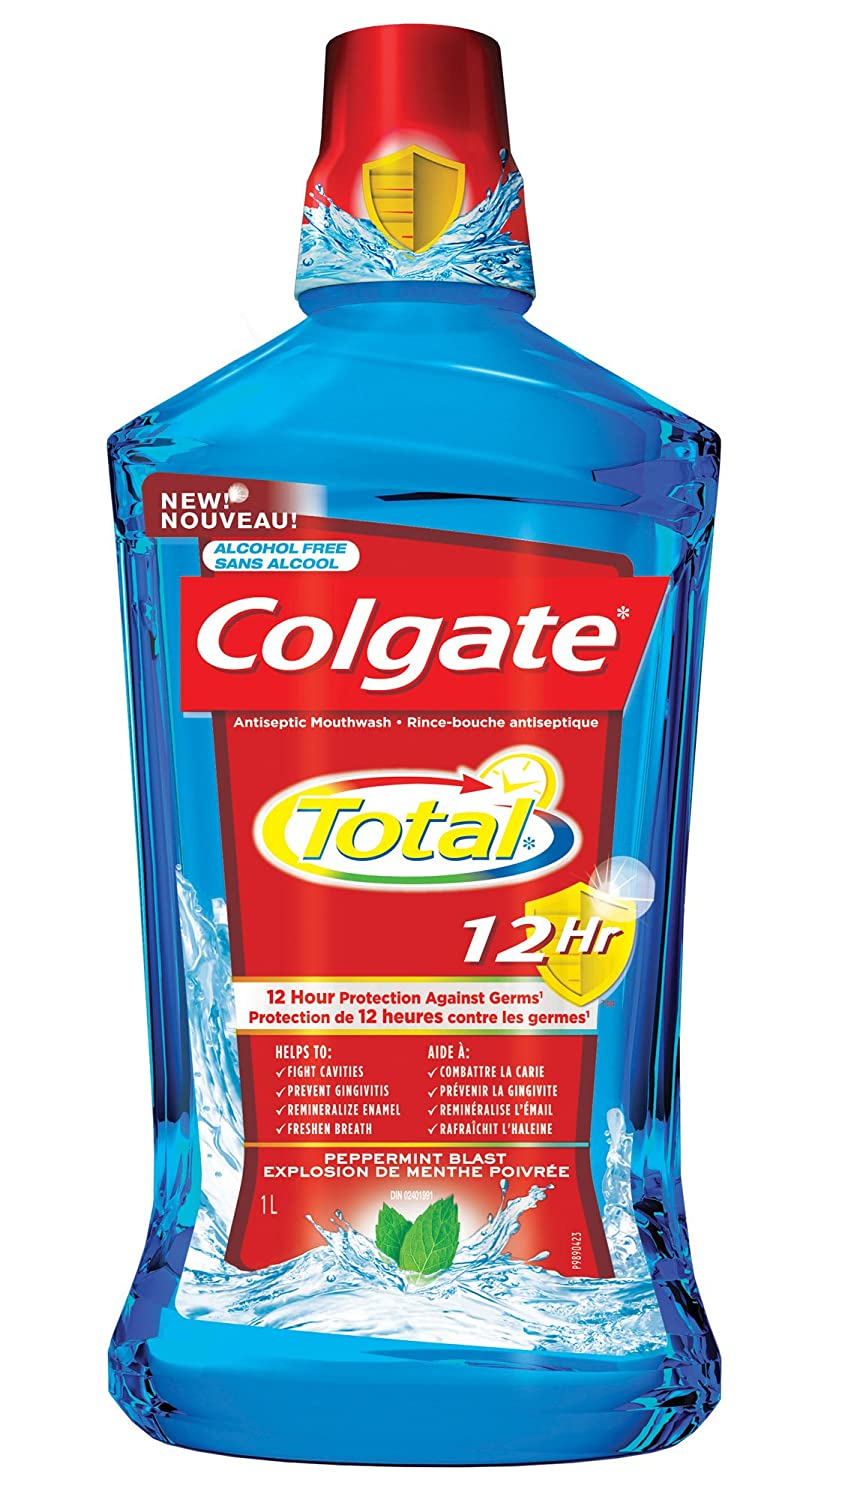 Colgate Total 12HR Pro-Shield Mouthwash Spearmint Surge, 1L 313930